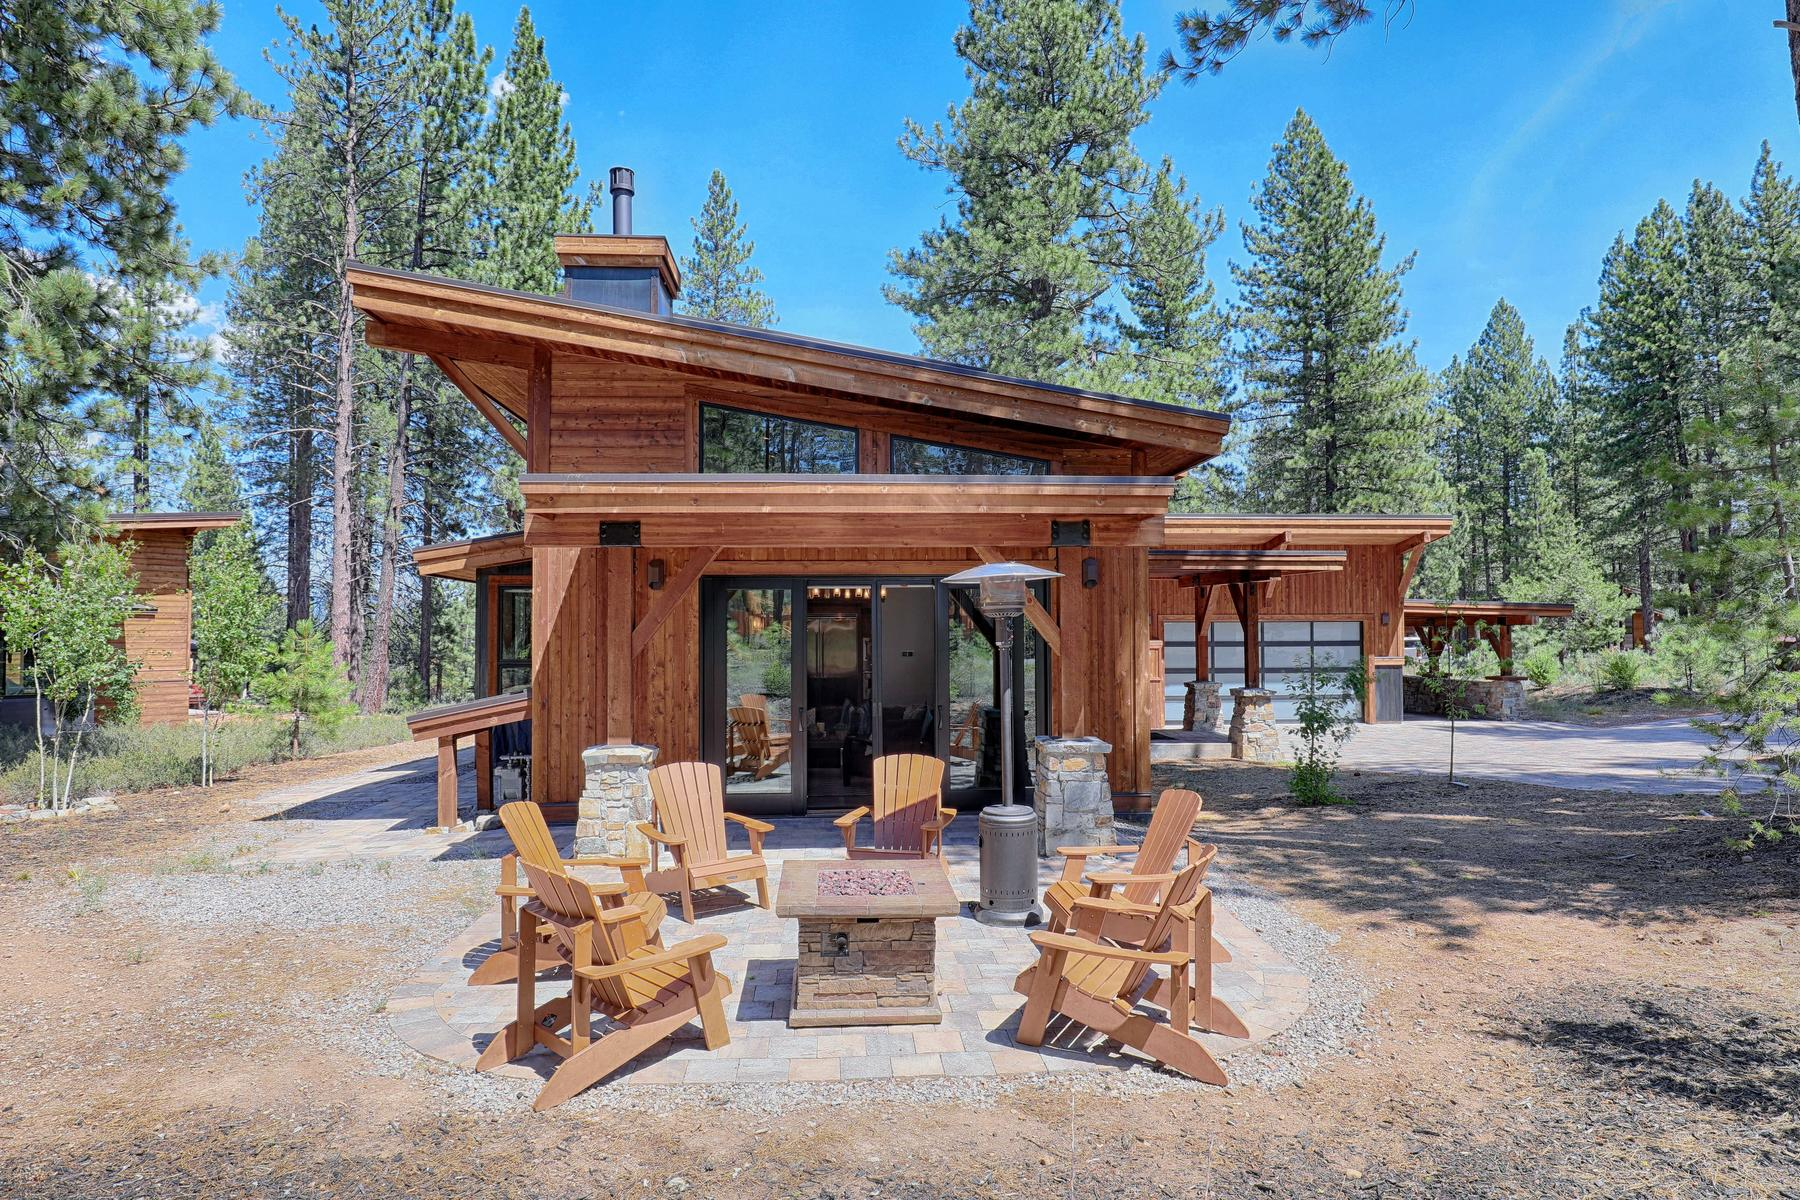 Additional photo for property listing at 11090 Henness Road, Truckee, Ca 96161 11090 Henness Road Truckee, California 96161 United States